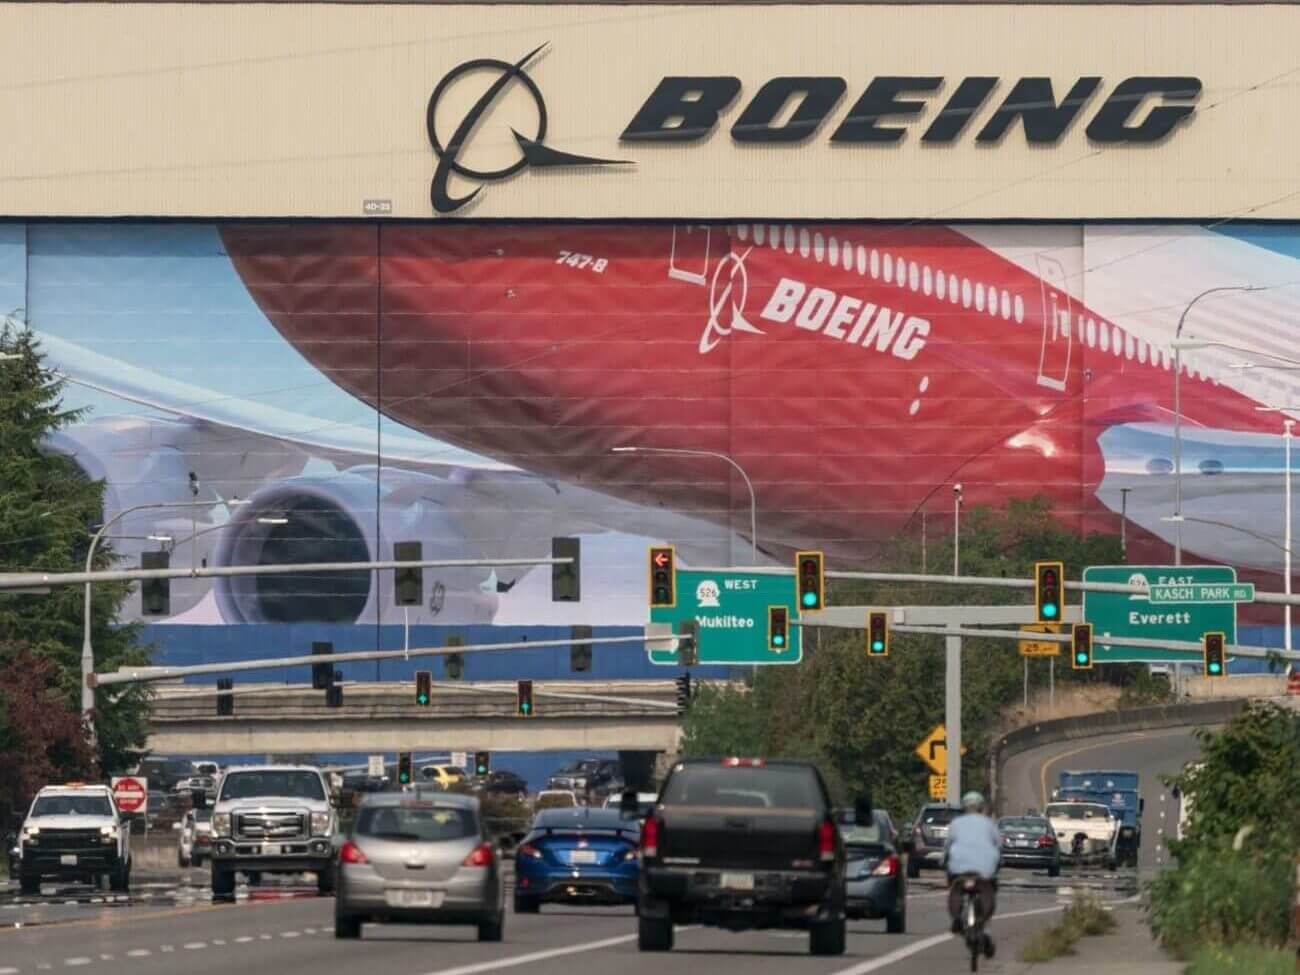 Boeing Is the Most contemporary Firm to Scramble a Adversarial Industry Atmosphere